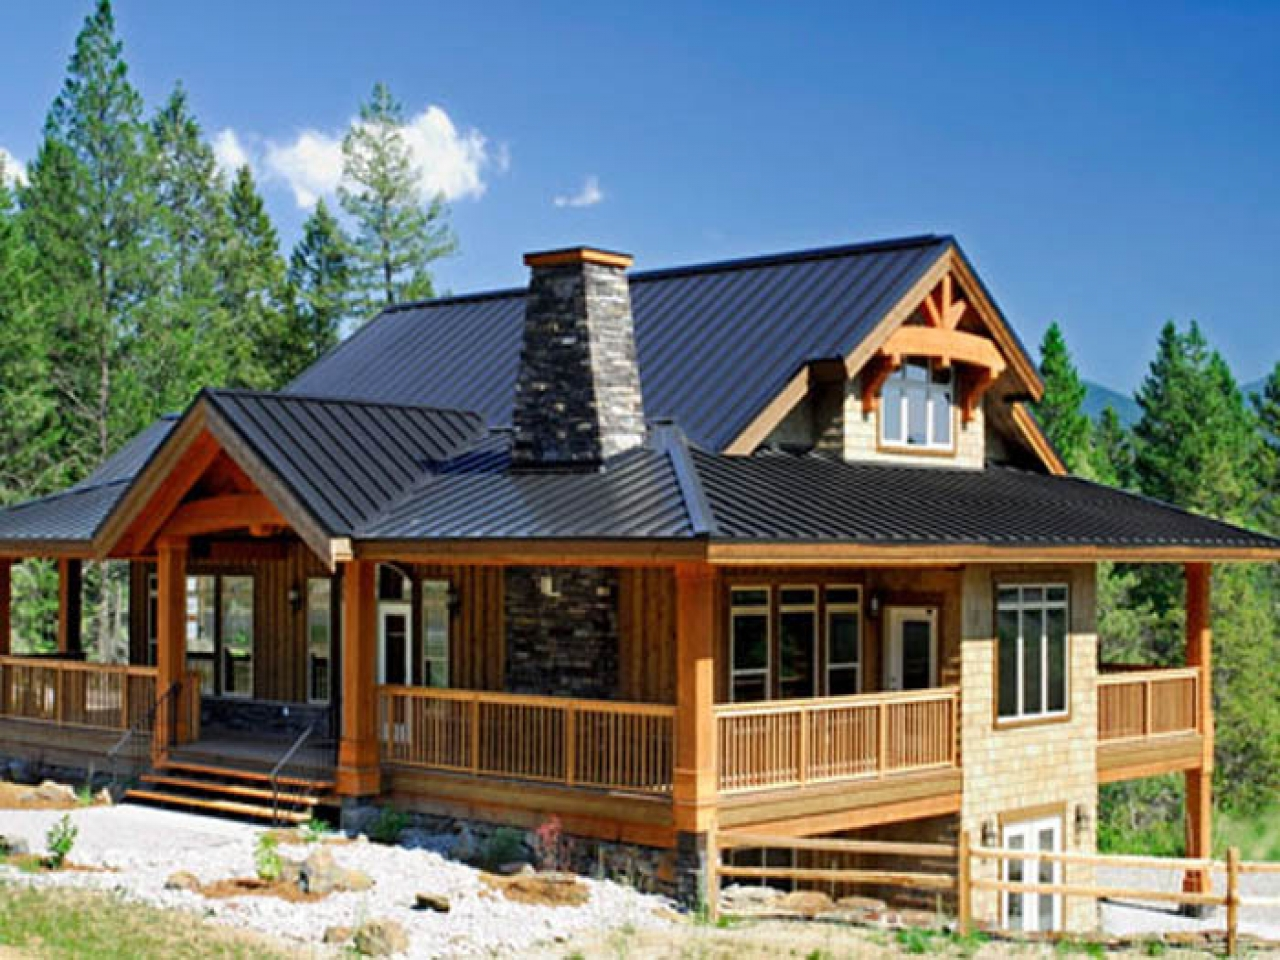 Post And Beam Foundation Cabin Small Homes